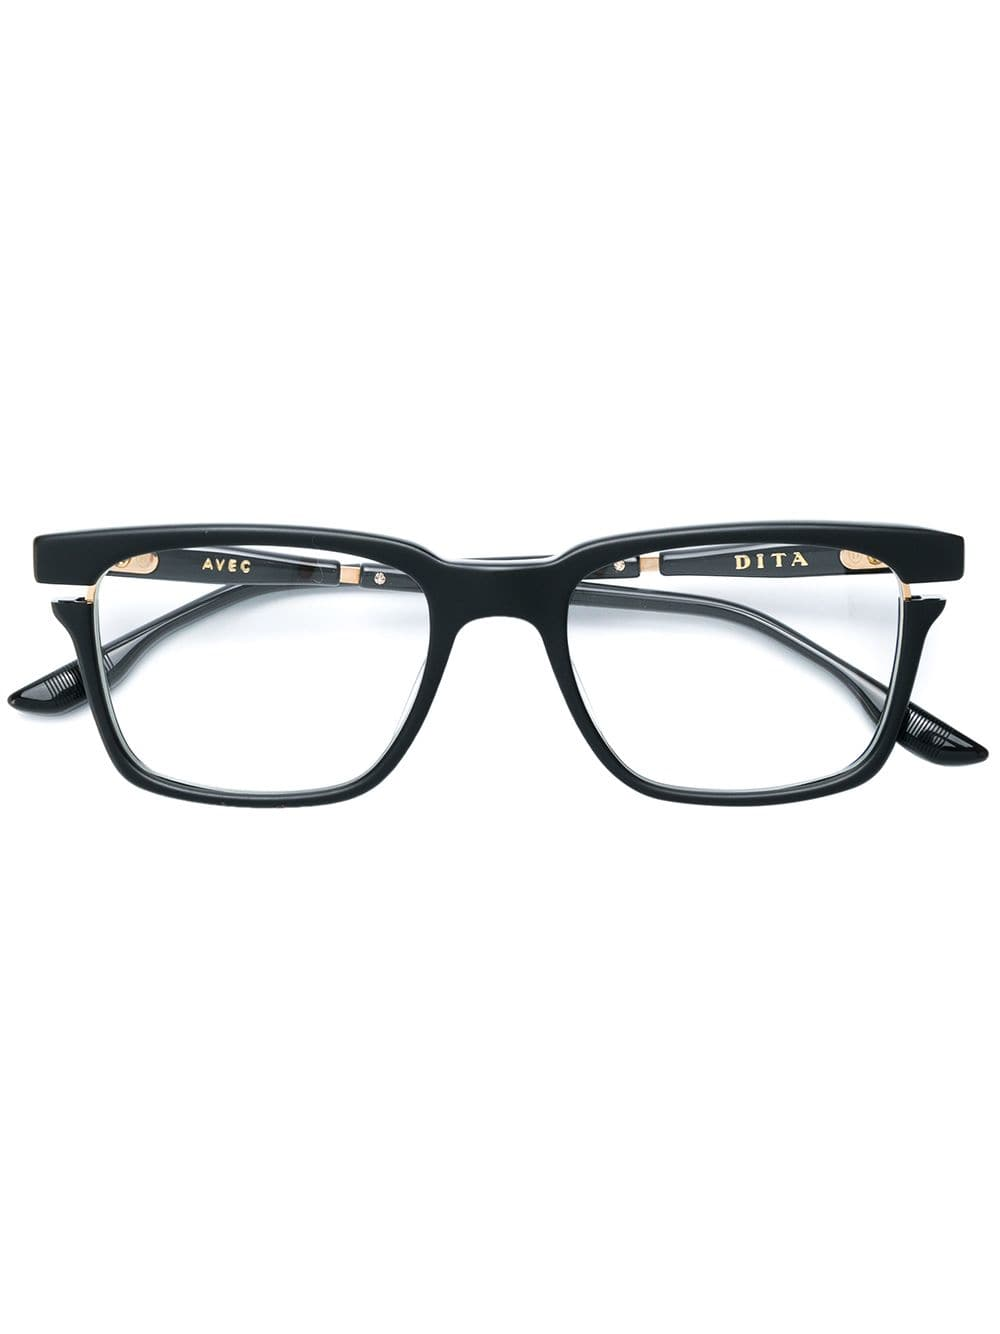 b2371b30b8e1 dita-eyewear-square-frame-glasses-black-farfetch-com-photo.jpg 1536809607